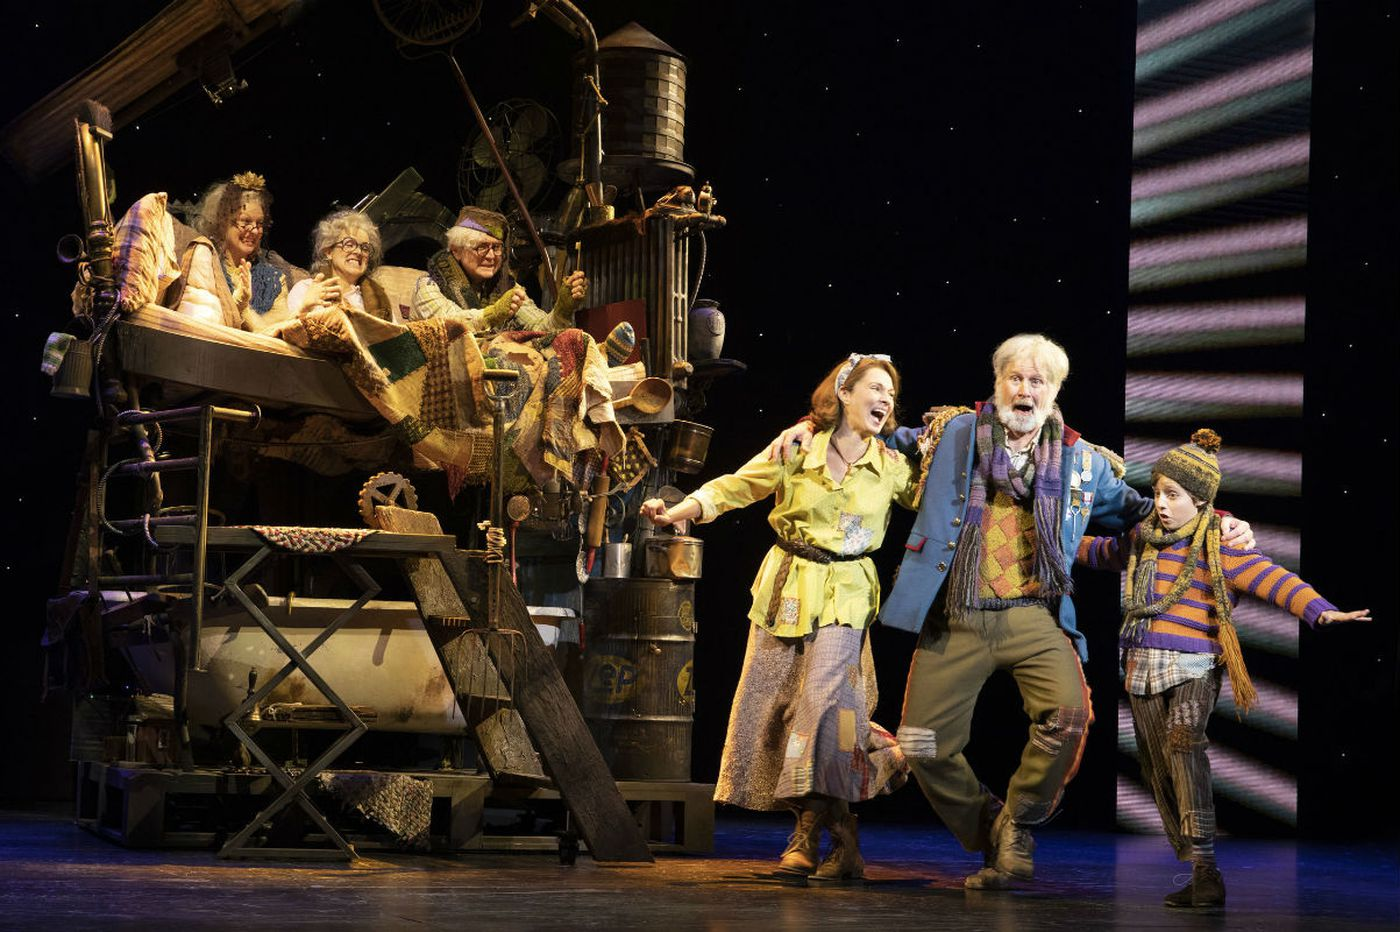 'Charlie and the Chocolate Factory' at Academy of Music: A fantastical celebration of courage and optimism